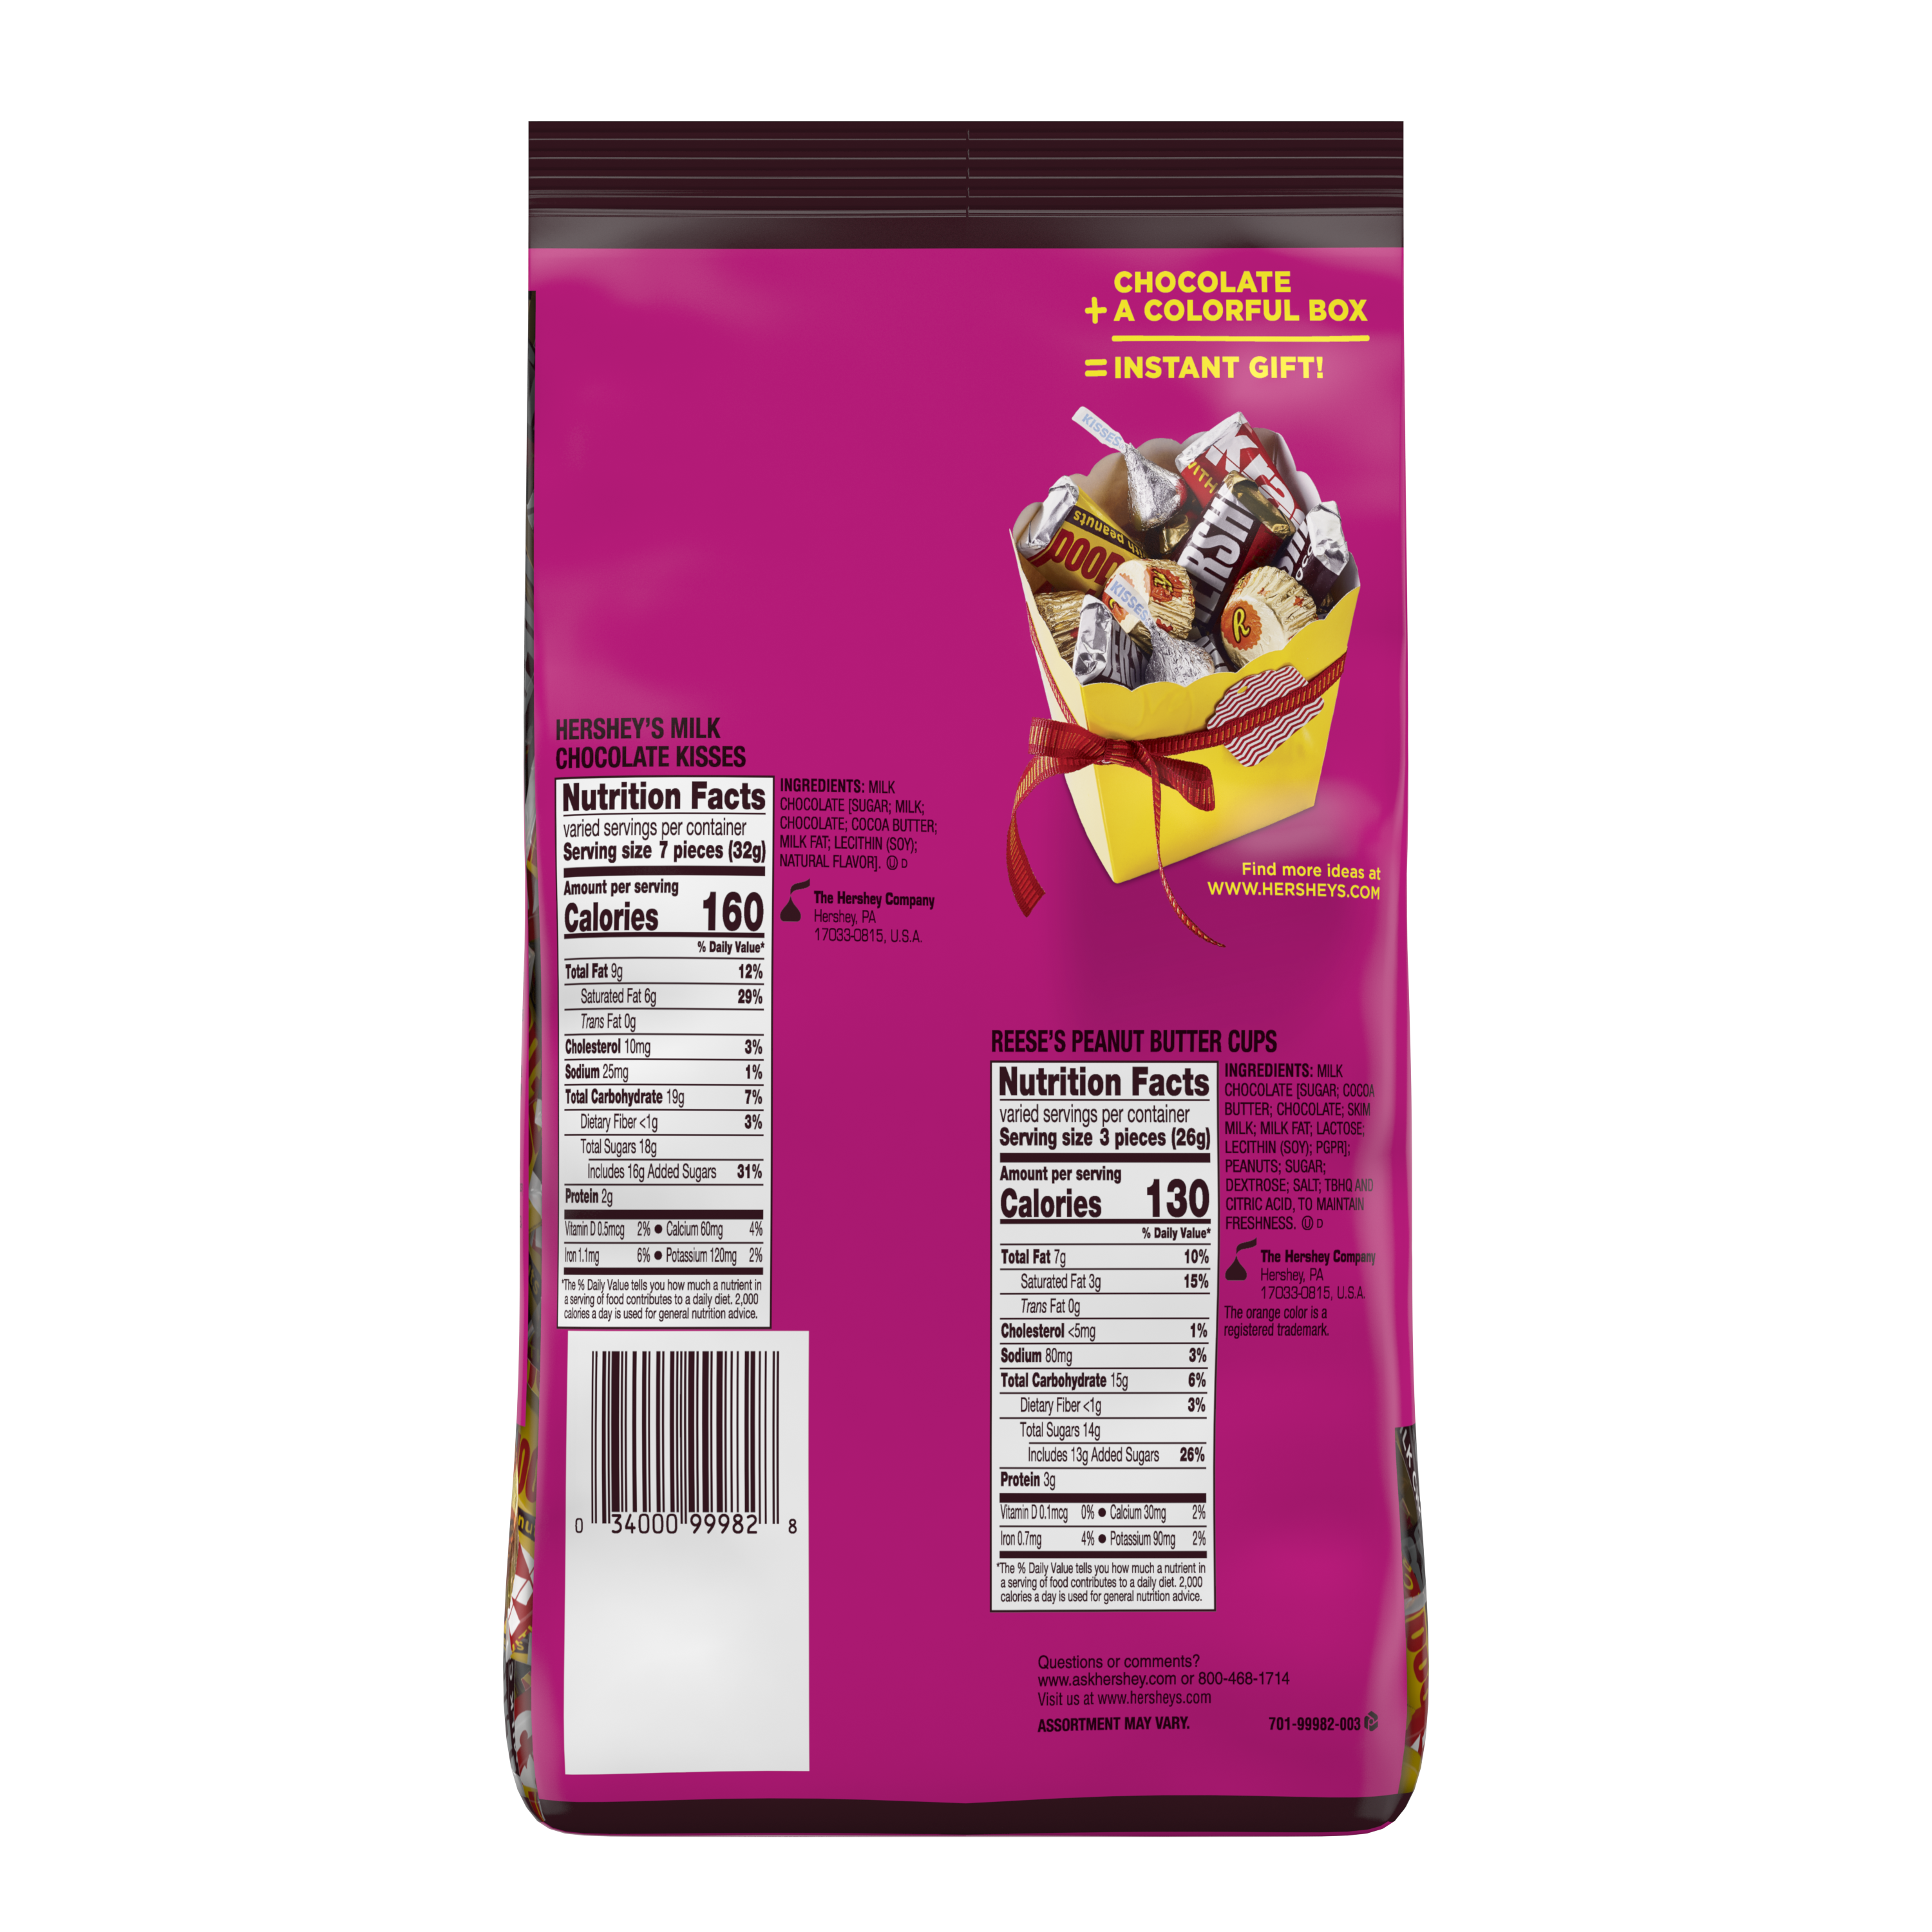 Hershey Miniature Assortment, 35 oz bag - Back of Package